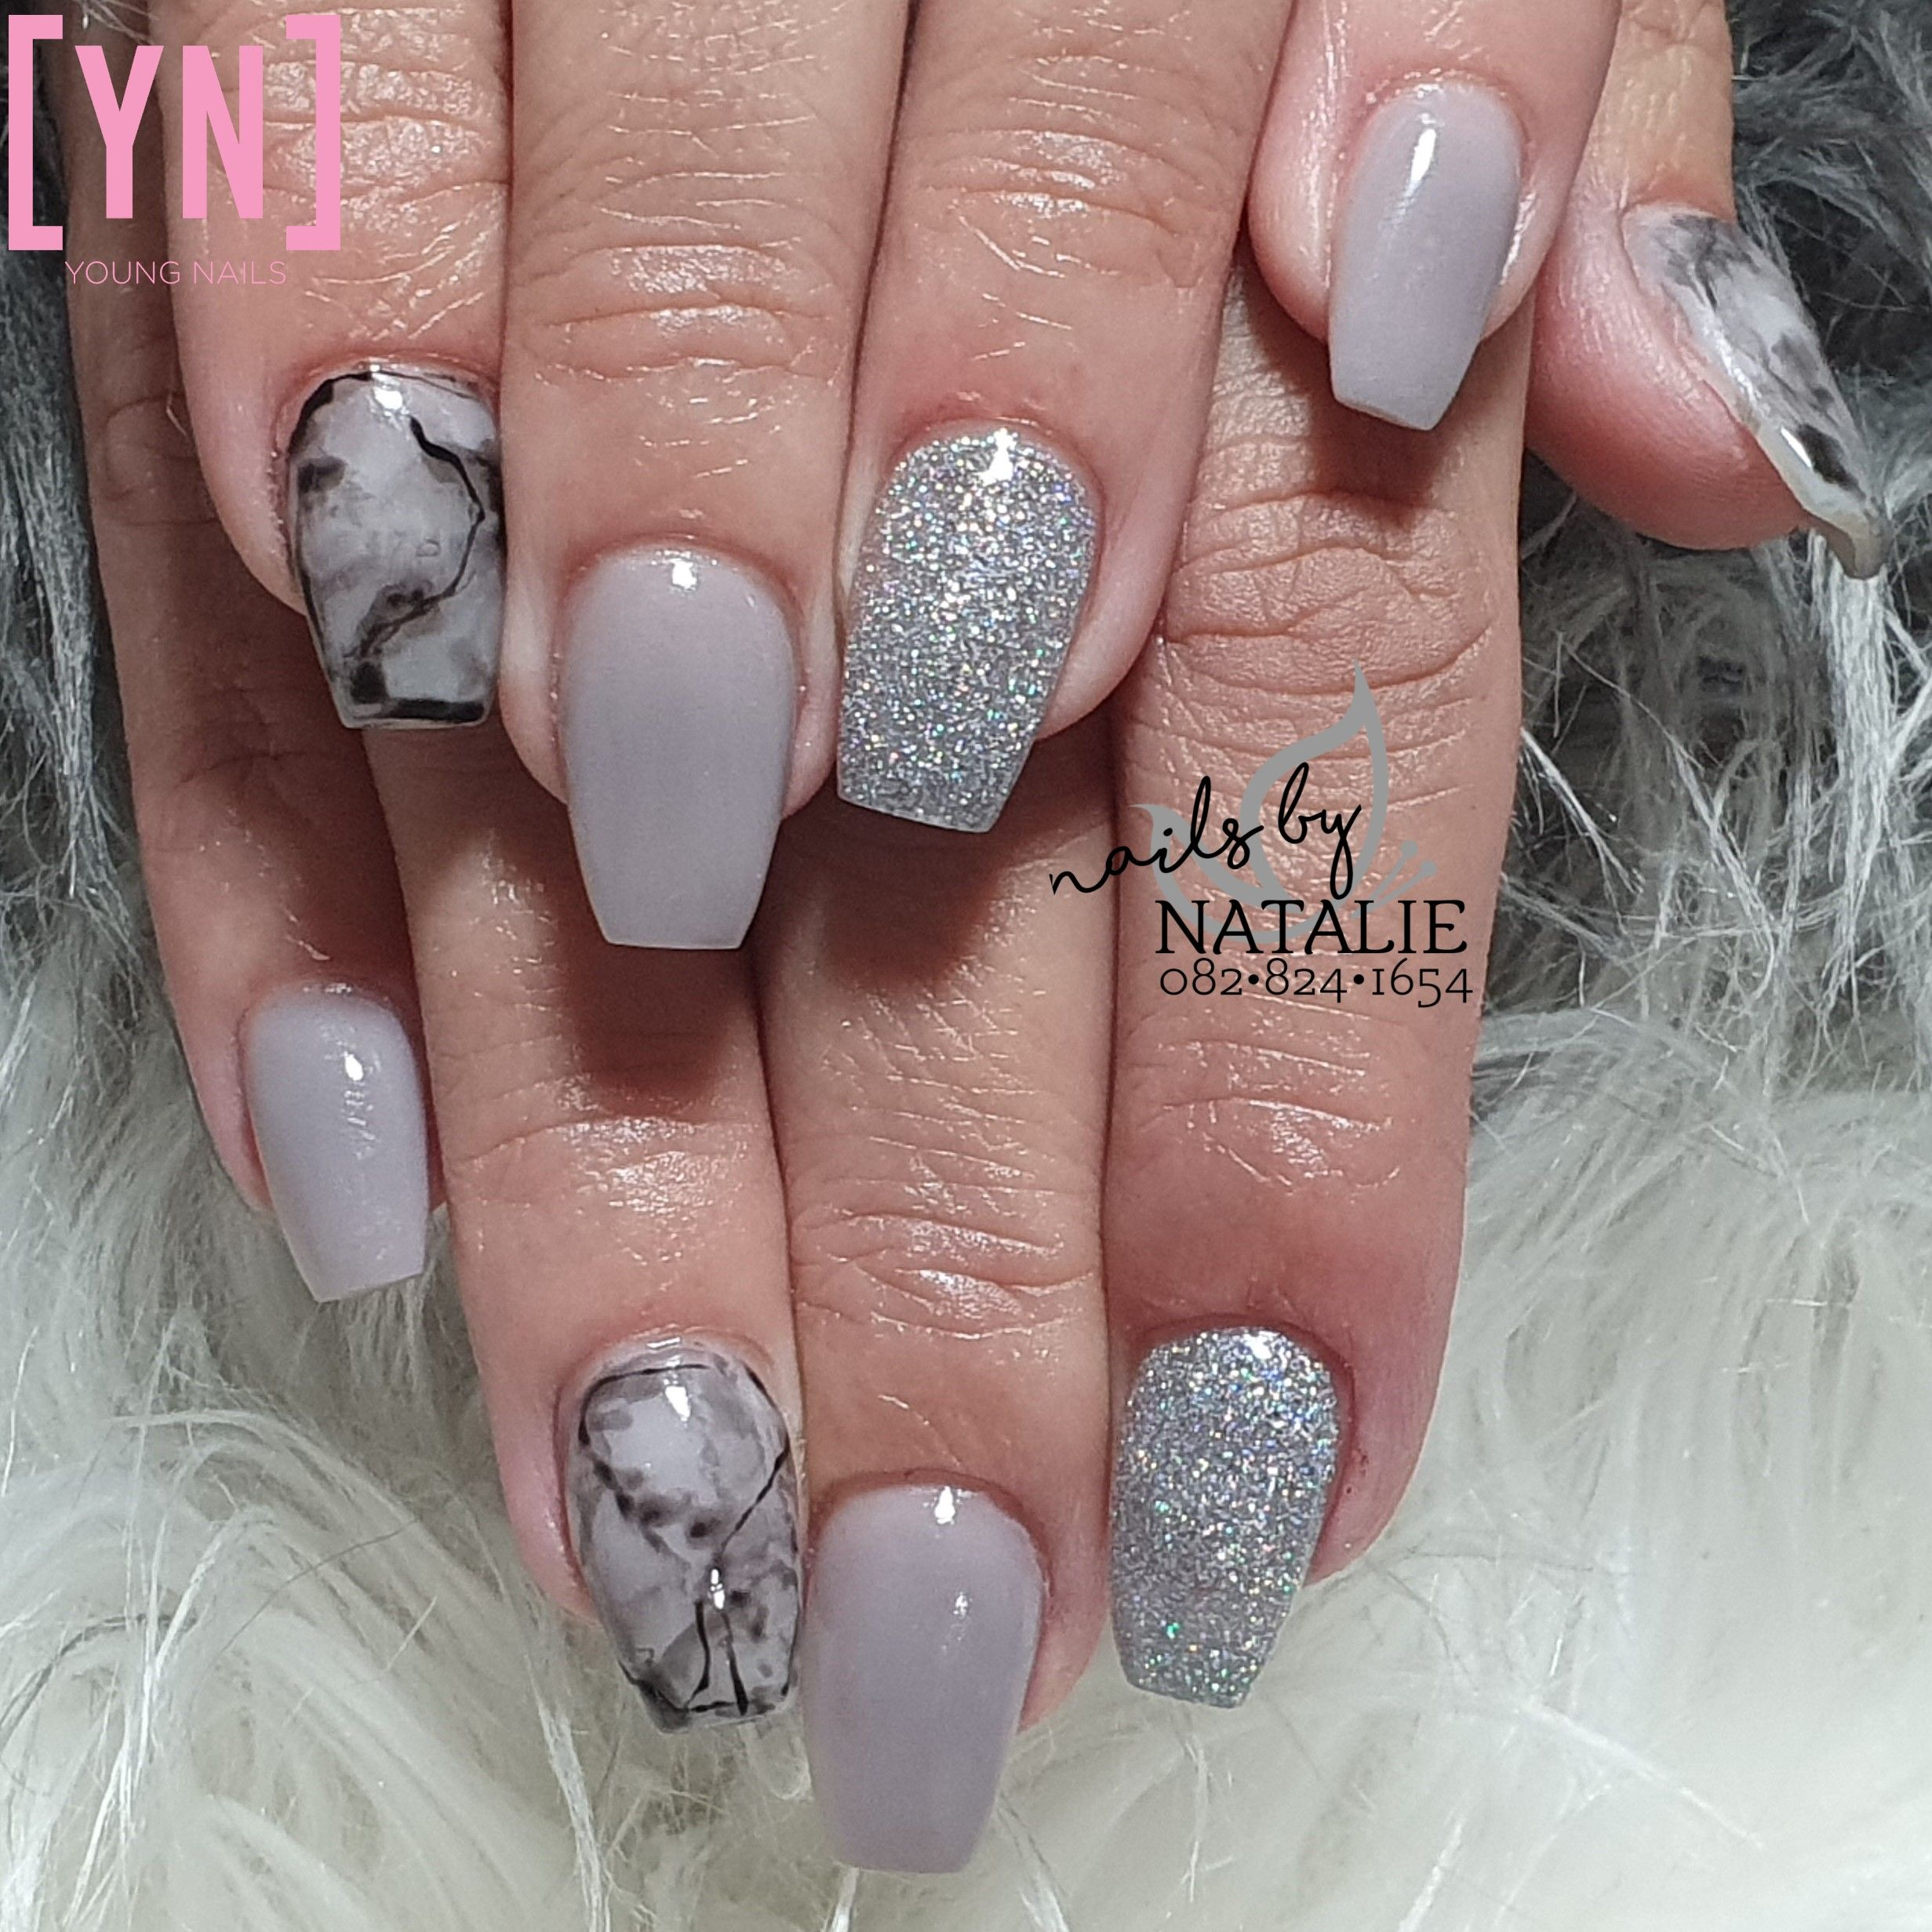 Young Nails Light Grey Acrylic Silver Glitter Black Marble In 2020 Overlay Nails Marble Acrylic Nails Acrylic Nail Art